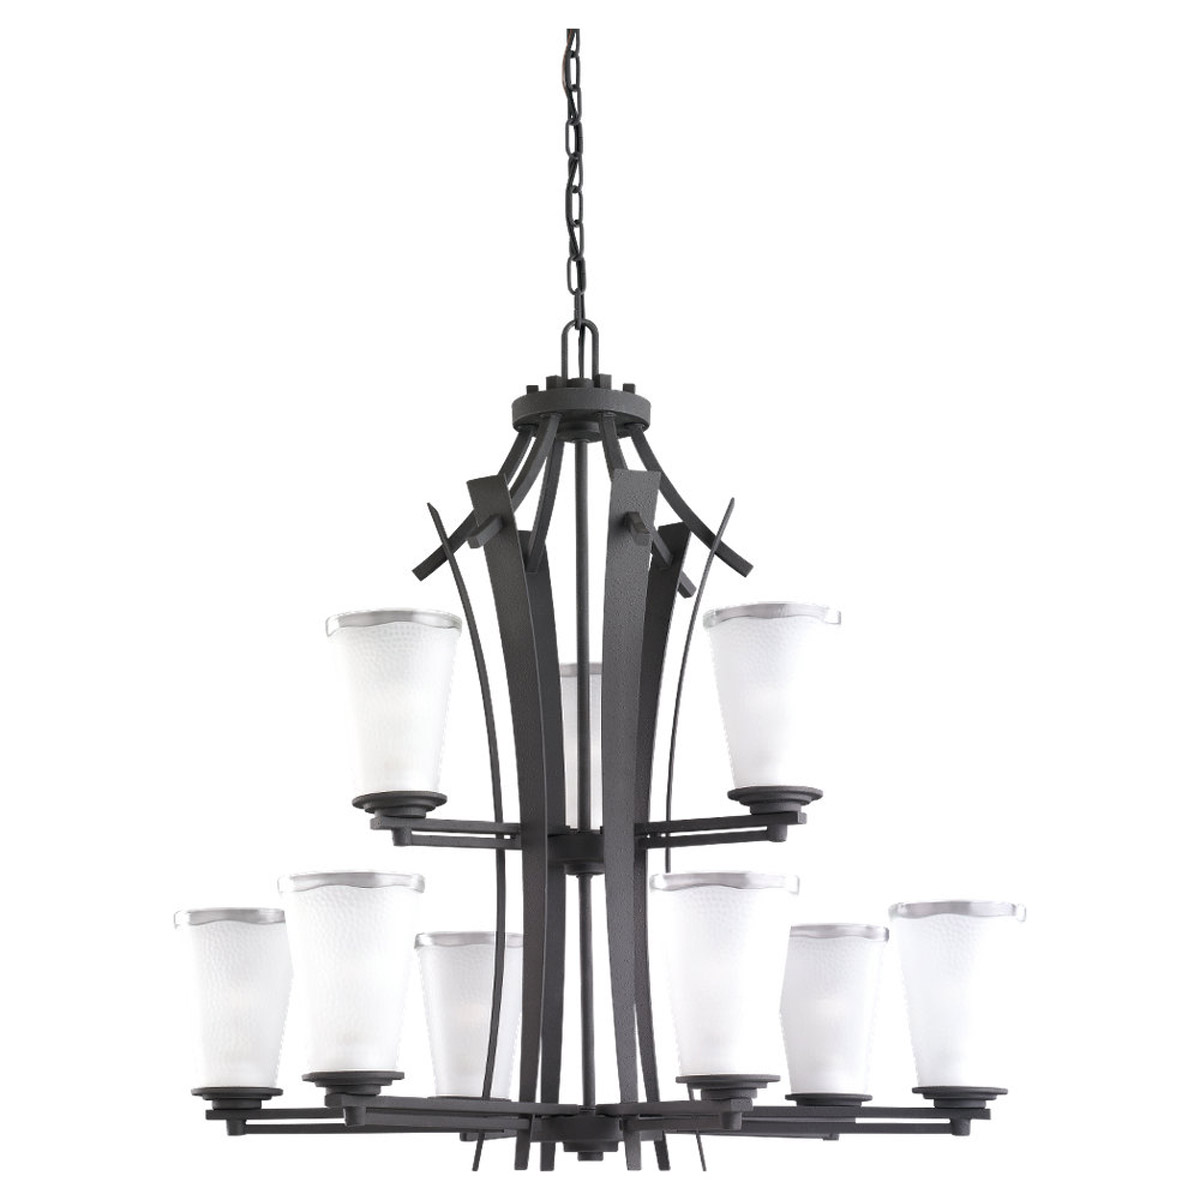 Sea Gull Lighting 59th Street 9 Light Chandelier in Blacksmith 31642-839 photo